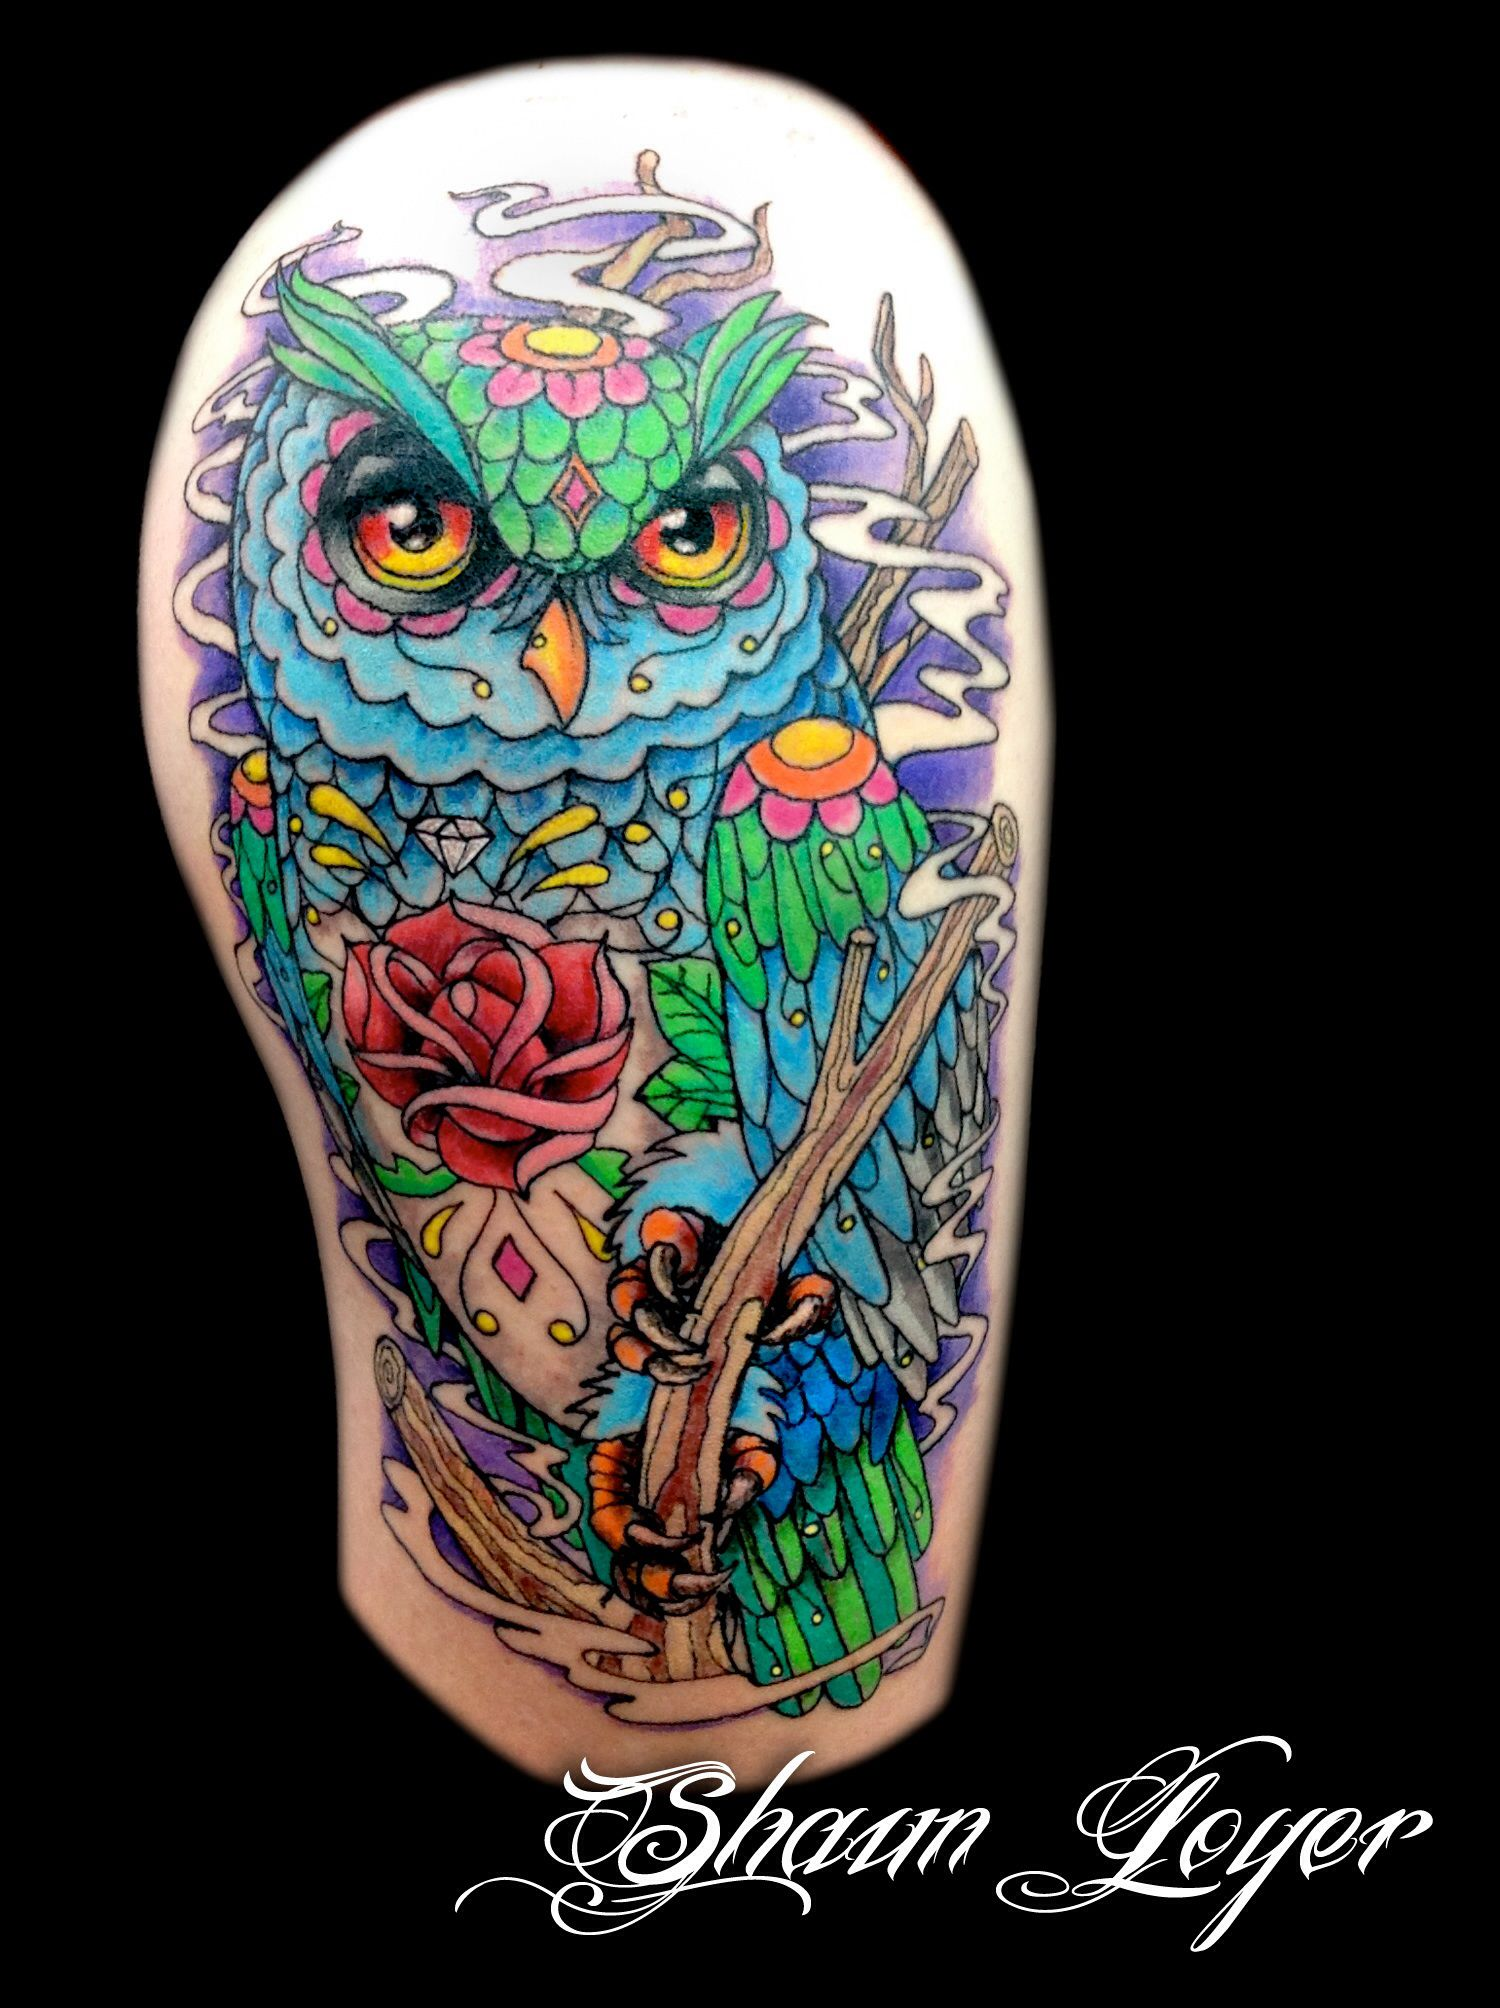 Tattoo tattoo designs and photography you can - Tattoo Designs And Photography You Can Collect Share